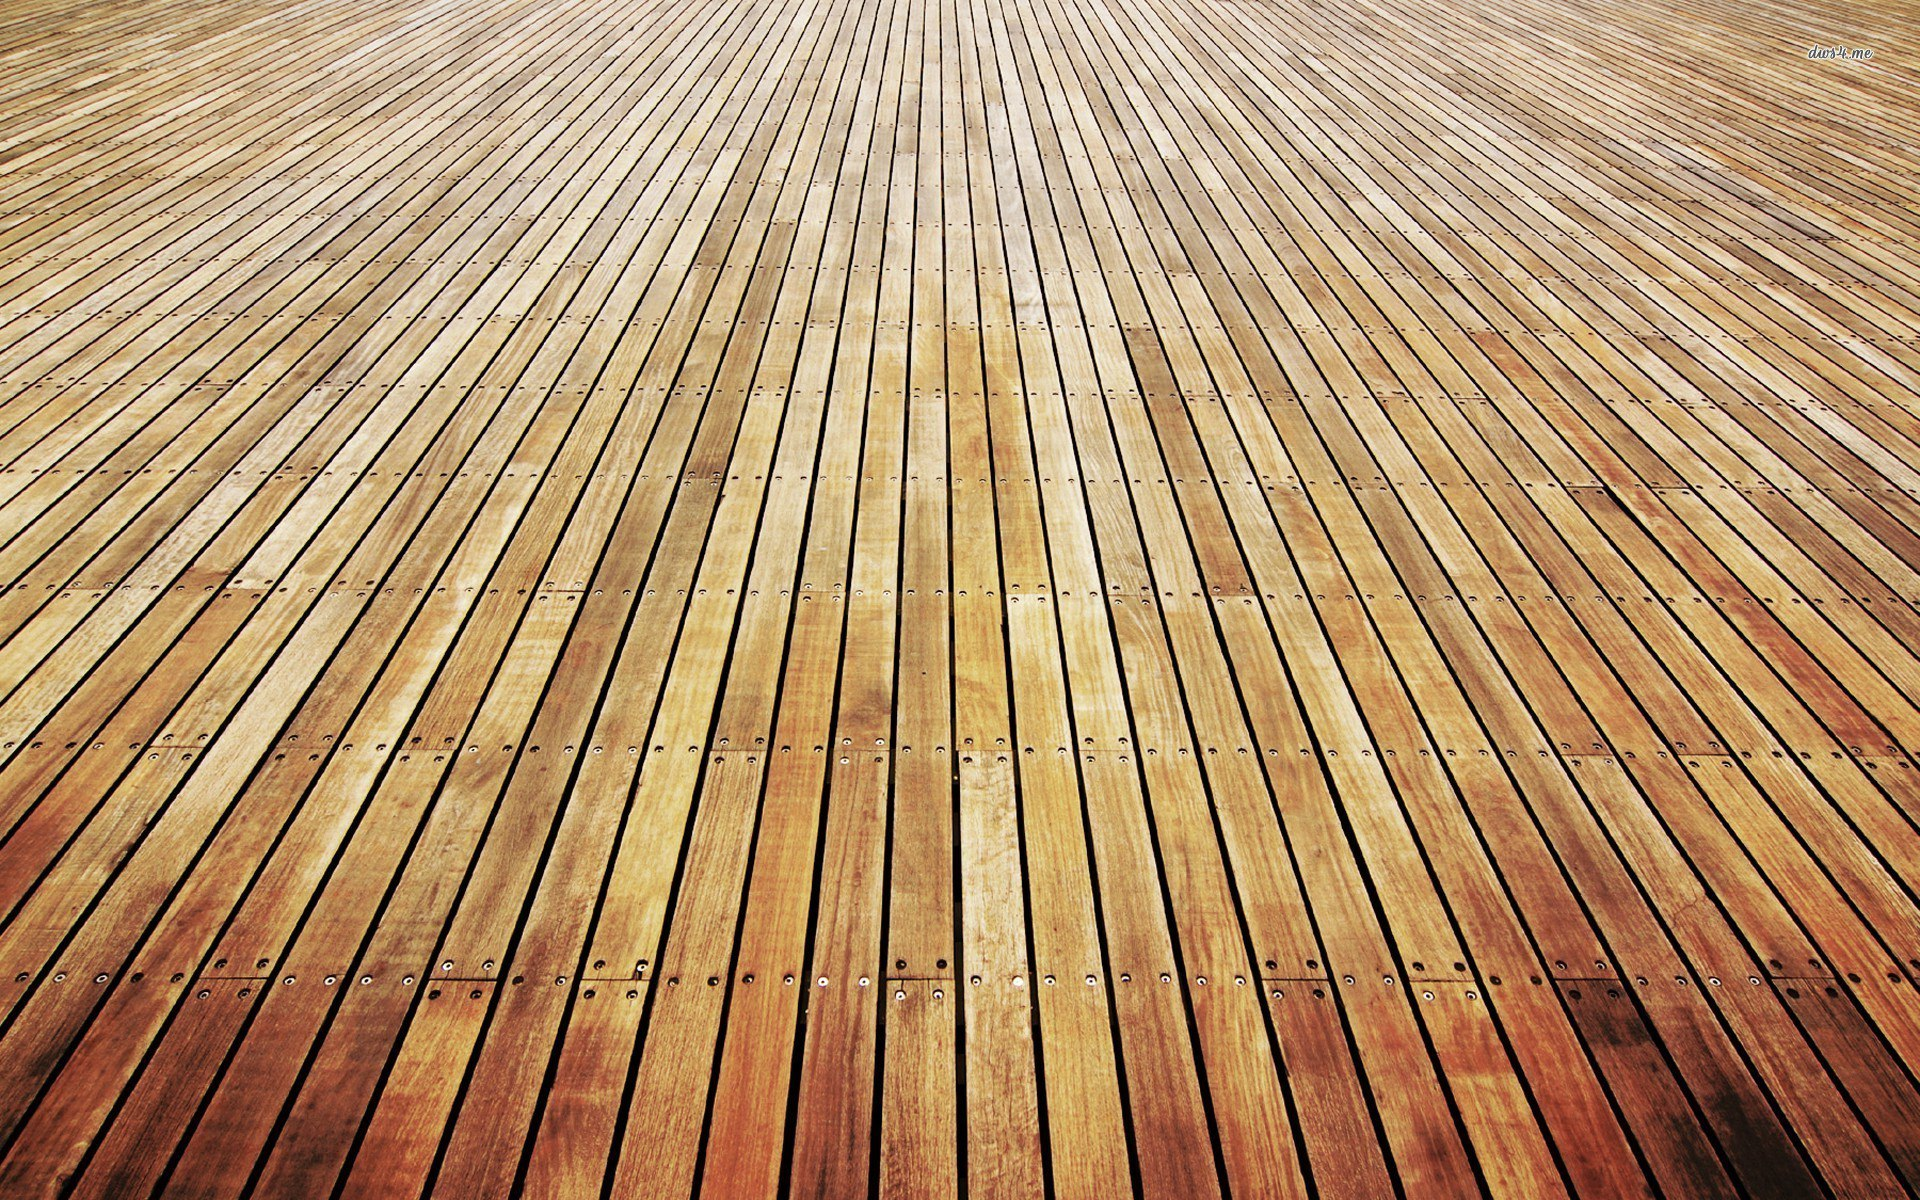 Wood Floor Backgrounds for Photographers